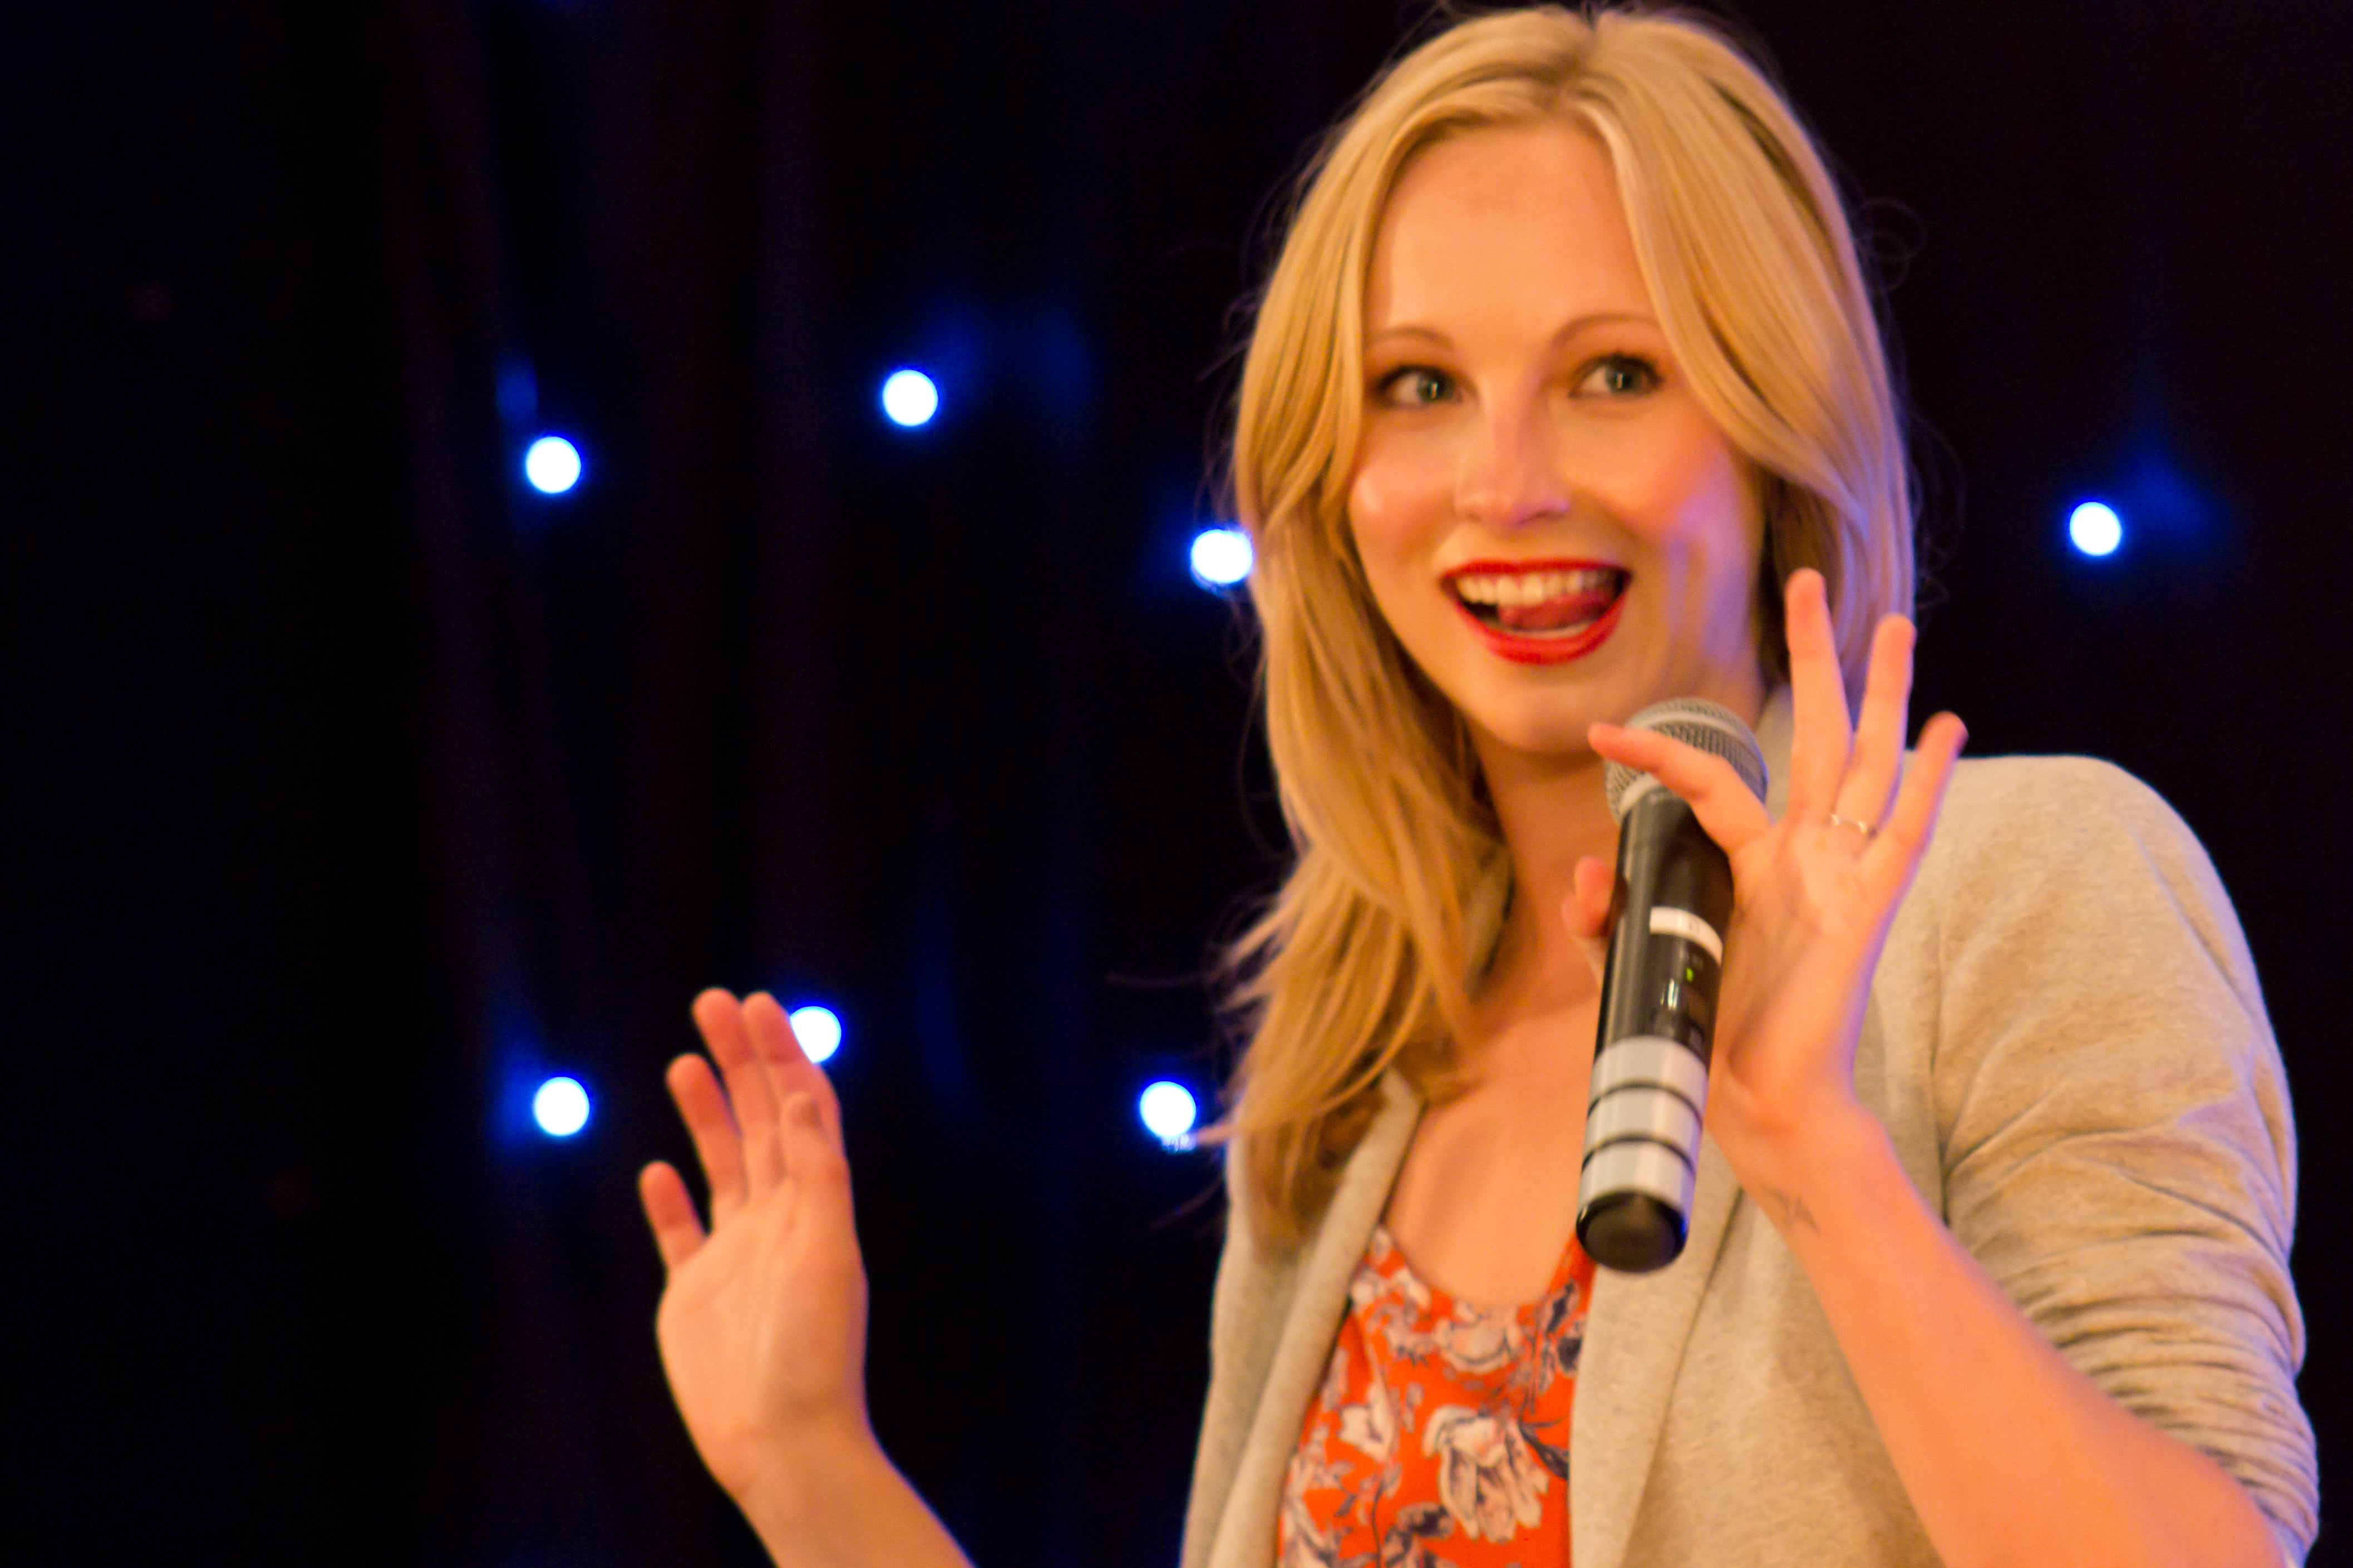 Candice Accola Full hd wallpapers